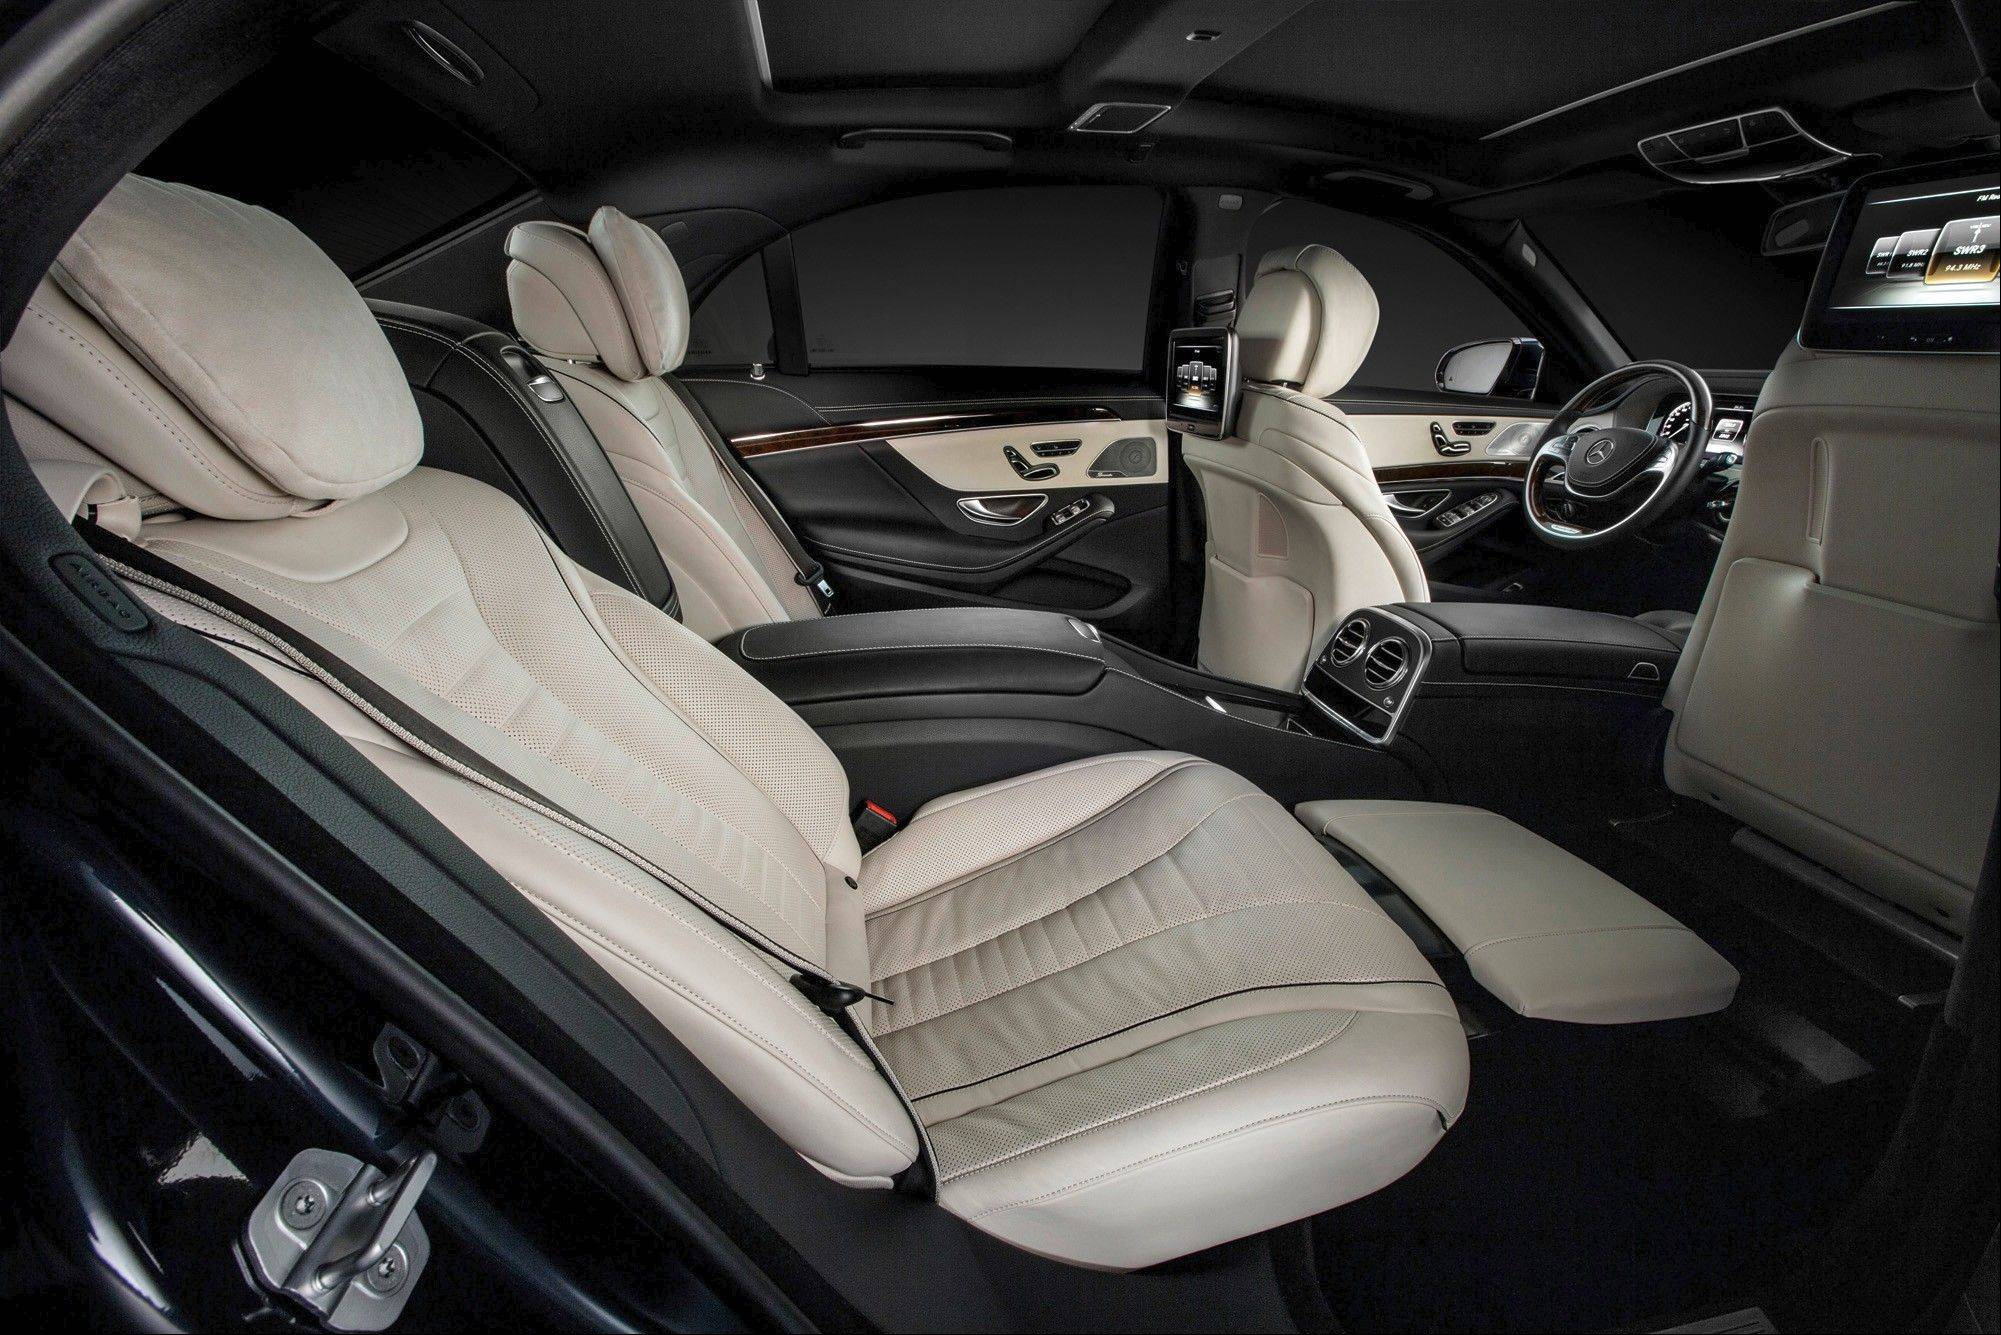 The interior of the new Mercedes-Benz S-Class S400 automobile: Daimler CEO Dieter Zetsche had his designers create a back seat that reclines to an industry-leading 43.5-degree angle. Such amenities are critical to reviving the Mercedes brand among well-heeled Chinese, who account for more than half of all worldwide sales of the S-Class.